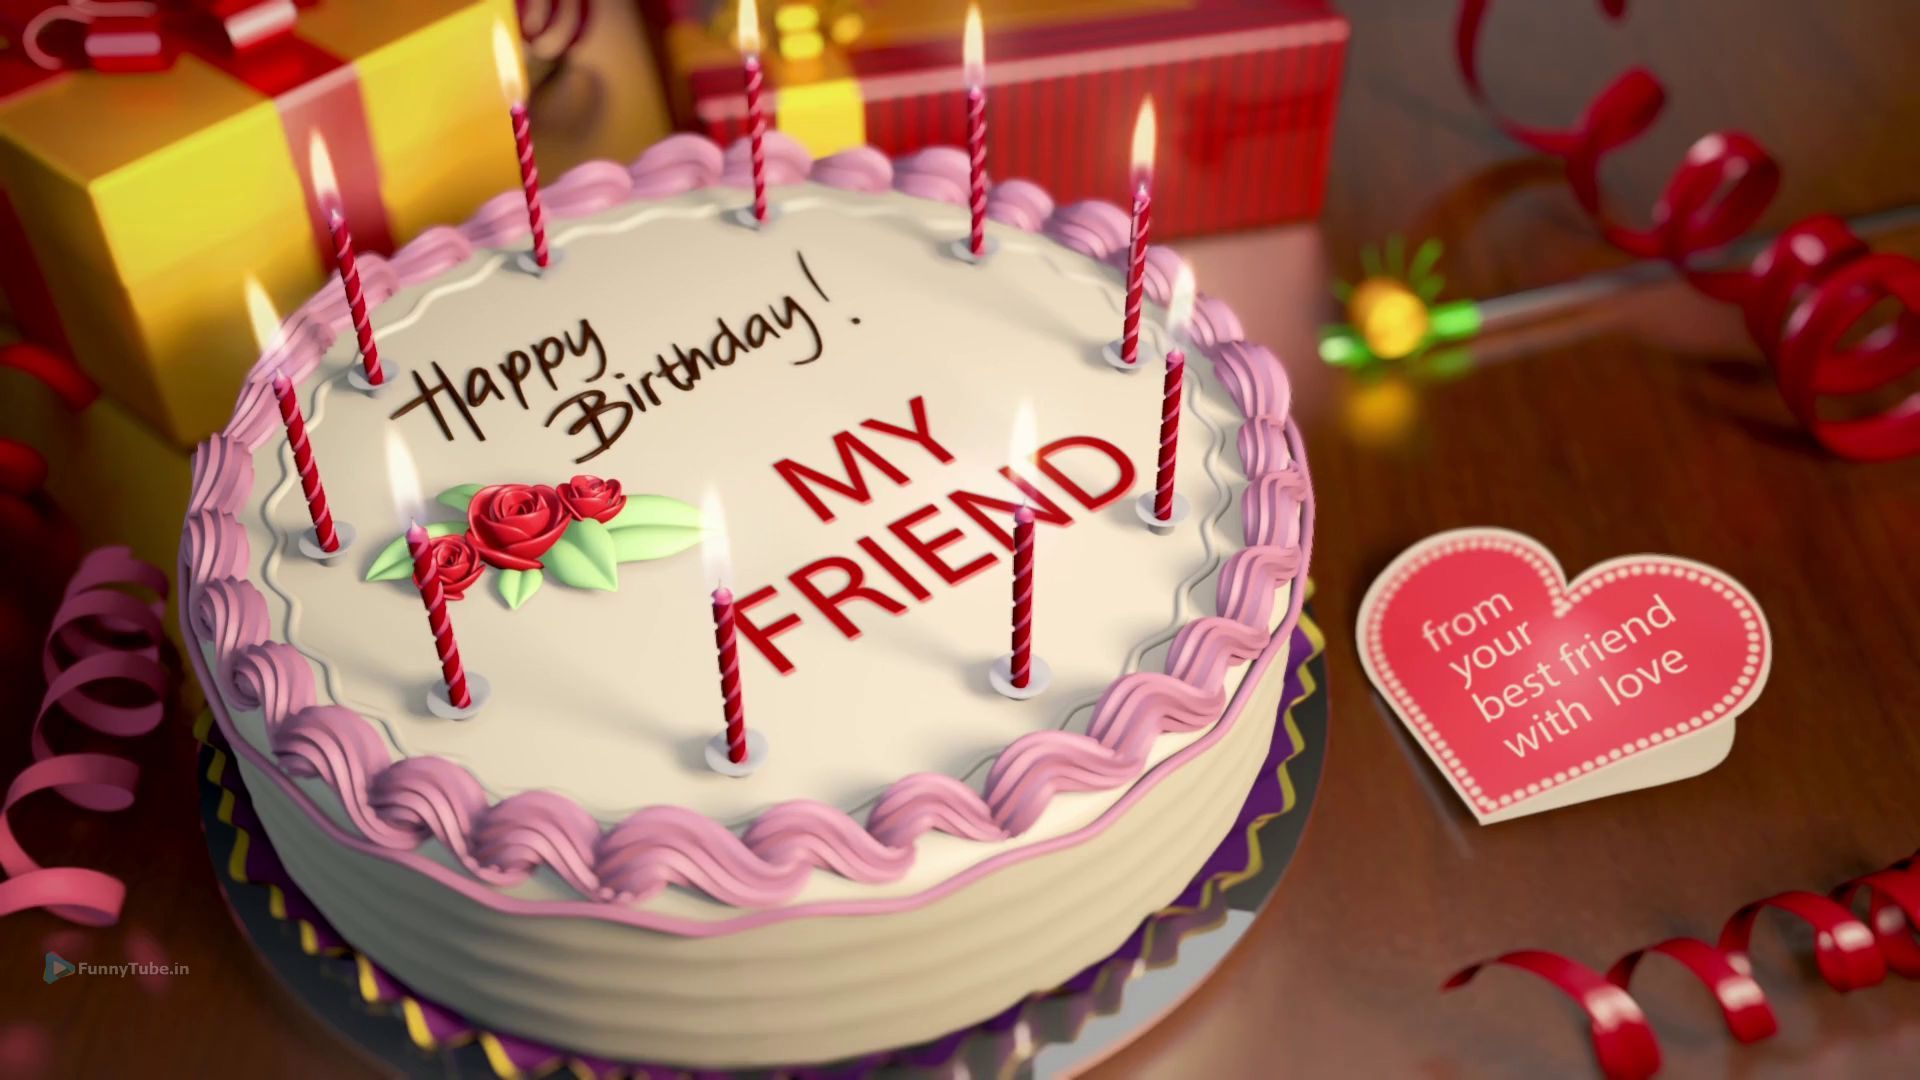 Whatsapp Video Happy Birthday Wish Video For Friend Happy Birthday Cakes Happy Birthday Video Birthday Cake Pictures